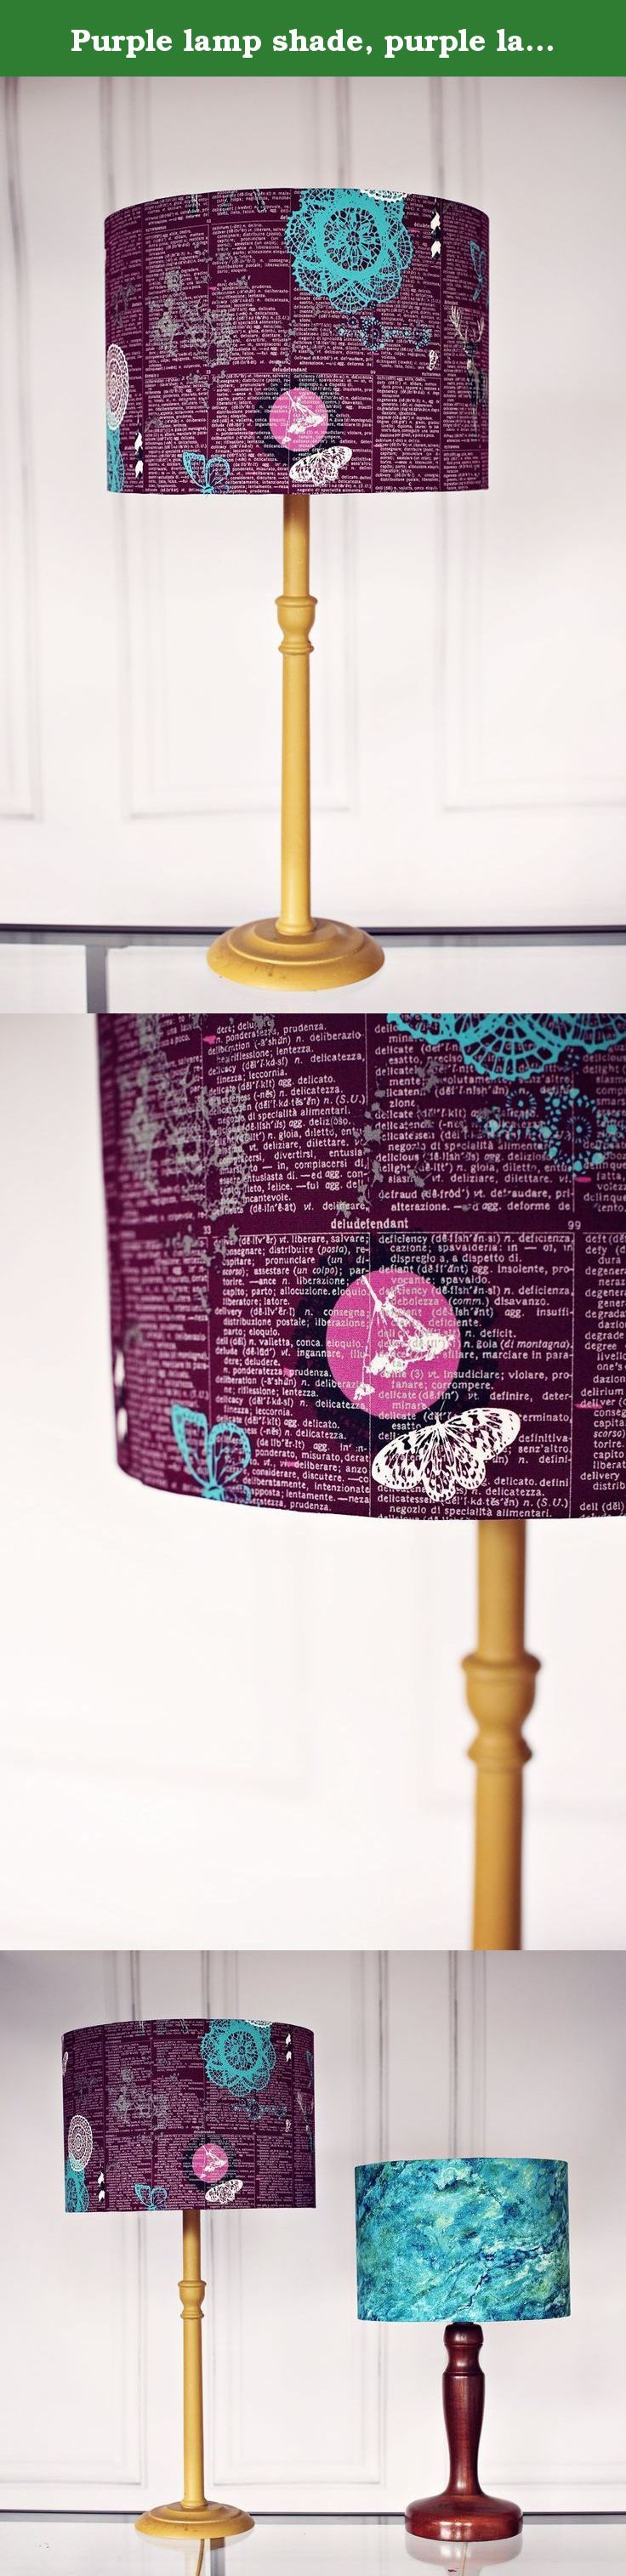 Purple lamp shade, purple lamp, lampshade, lamp shade, drum lampshade, woodland lamp shade, deer lamp, table lamp, pendant light, lighting. This Purple lampshade features a magical Art Gallery fabric designed by Katarina Roccella. The Plum fabric has white writing on it and there are pictures from nature such as deer and butterflies over the top. The fabric features the colours of plum, pewter, turquoise and auburn. The shade has a contemporary feel and looks beautiful in the home. br…